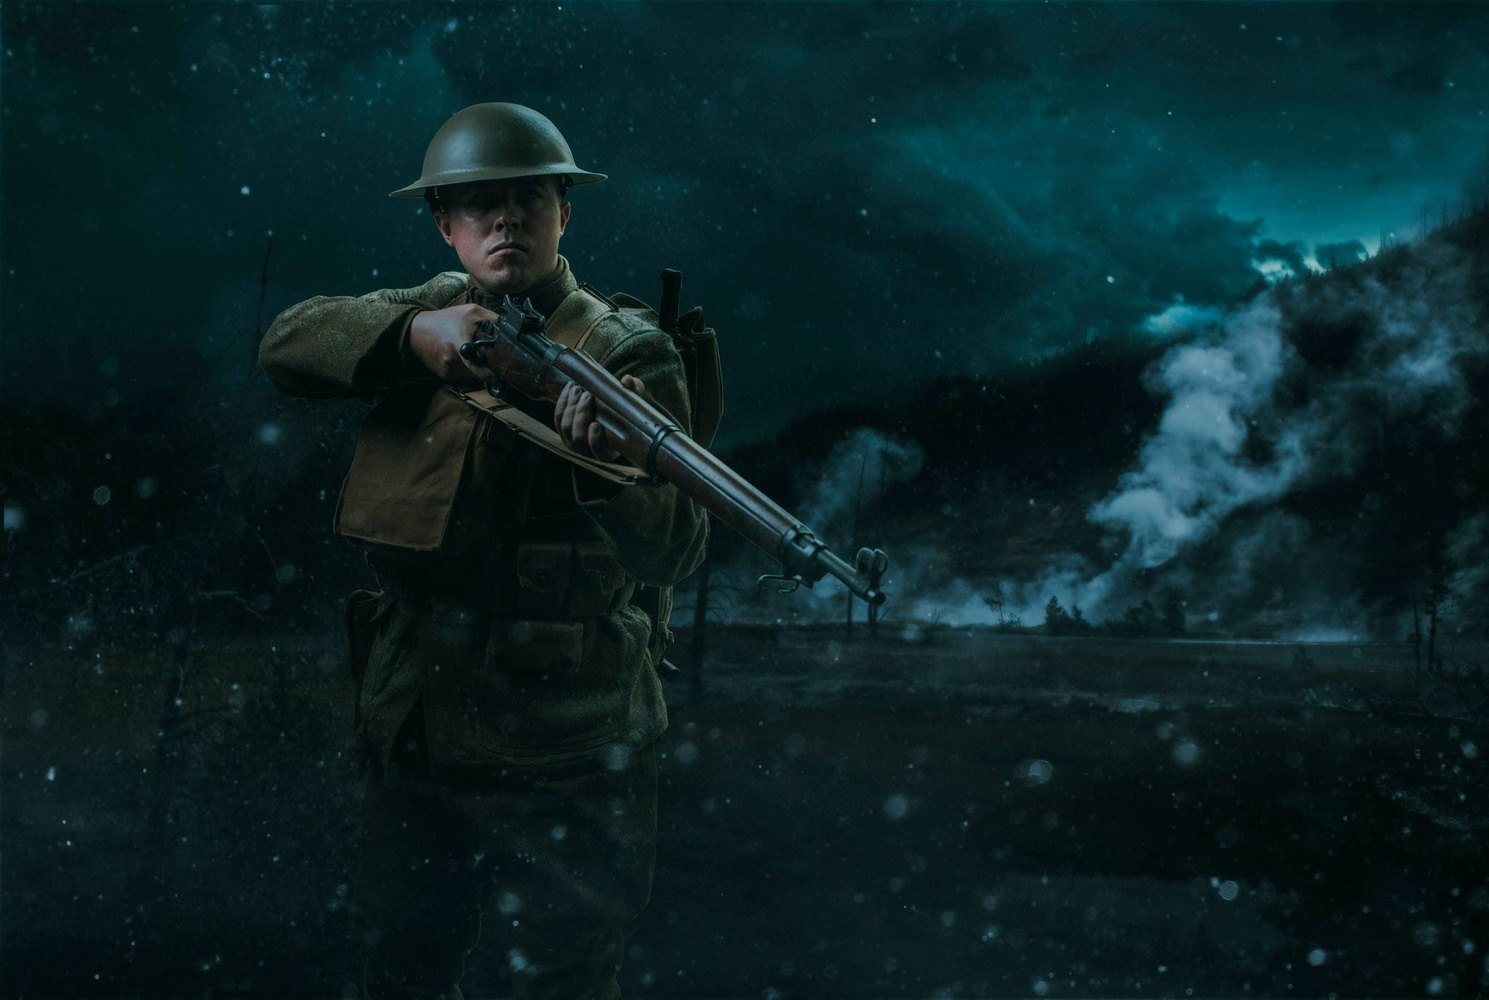 America WWI Soldier in battle by Justin Lister